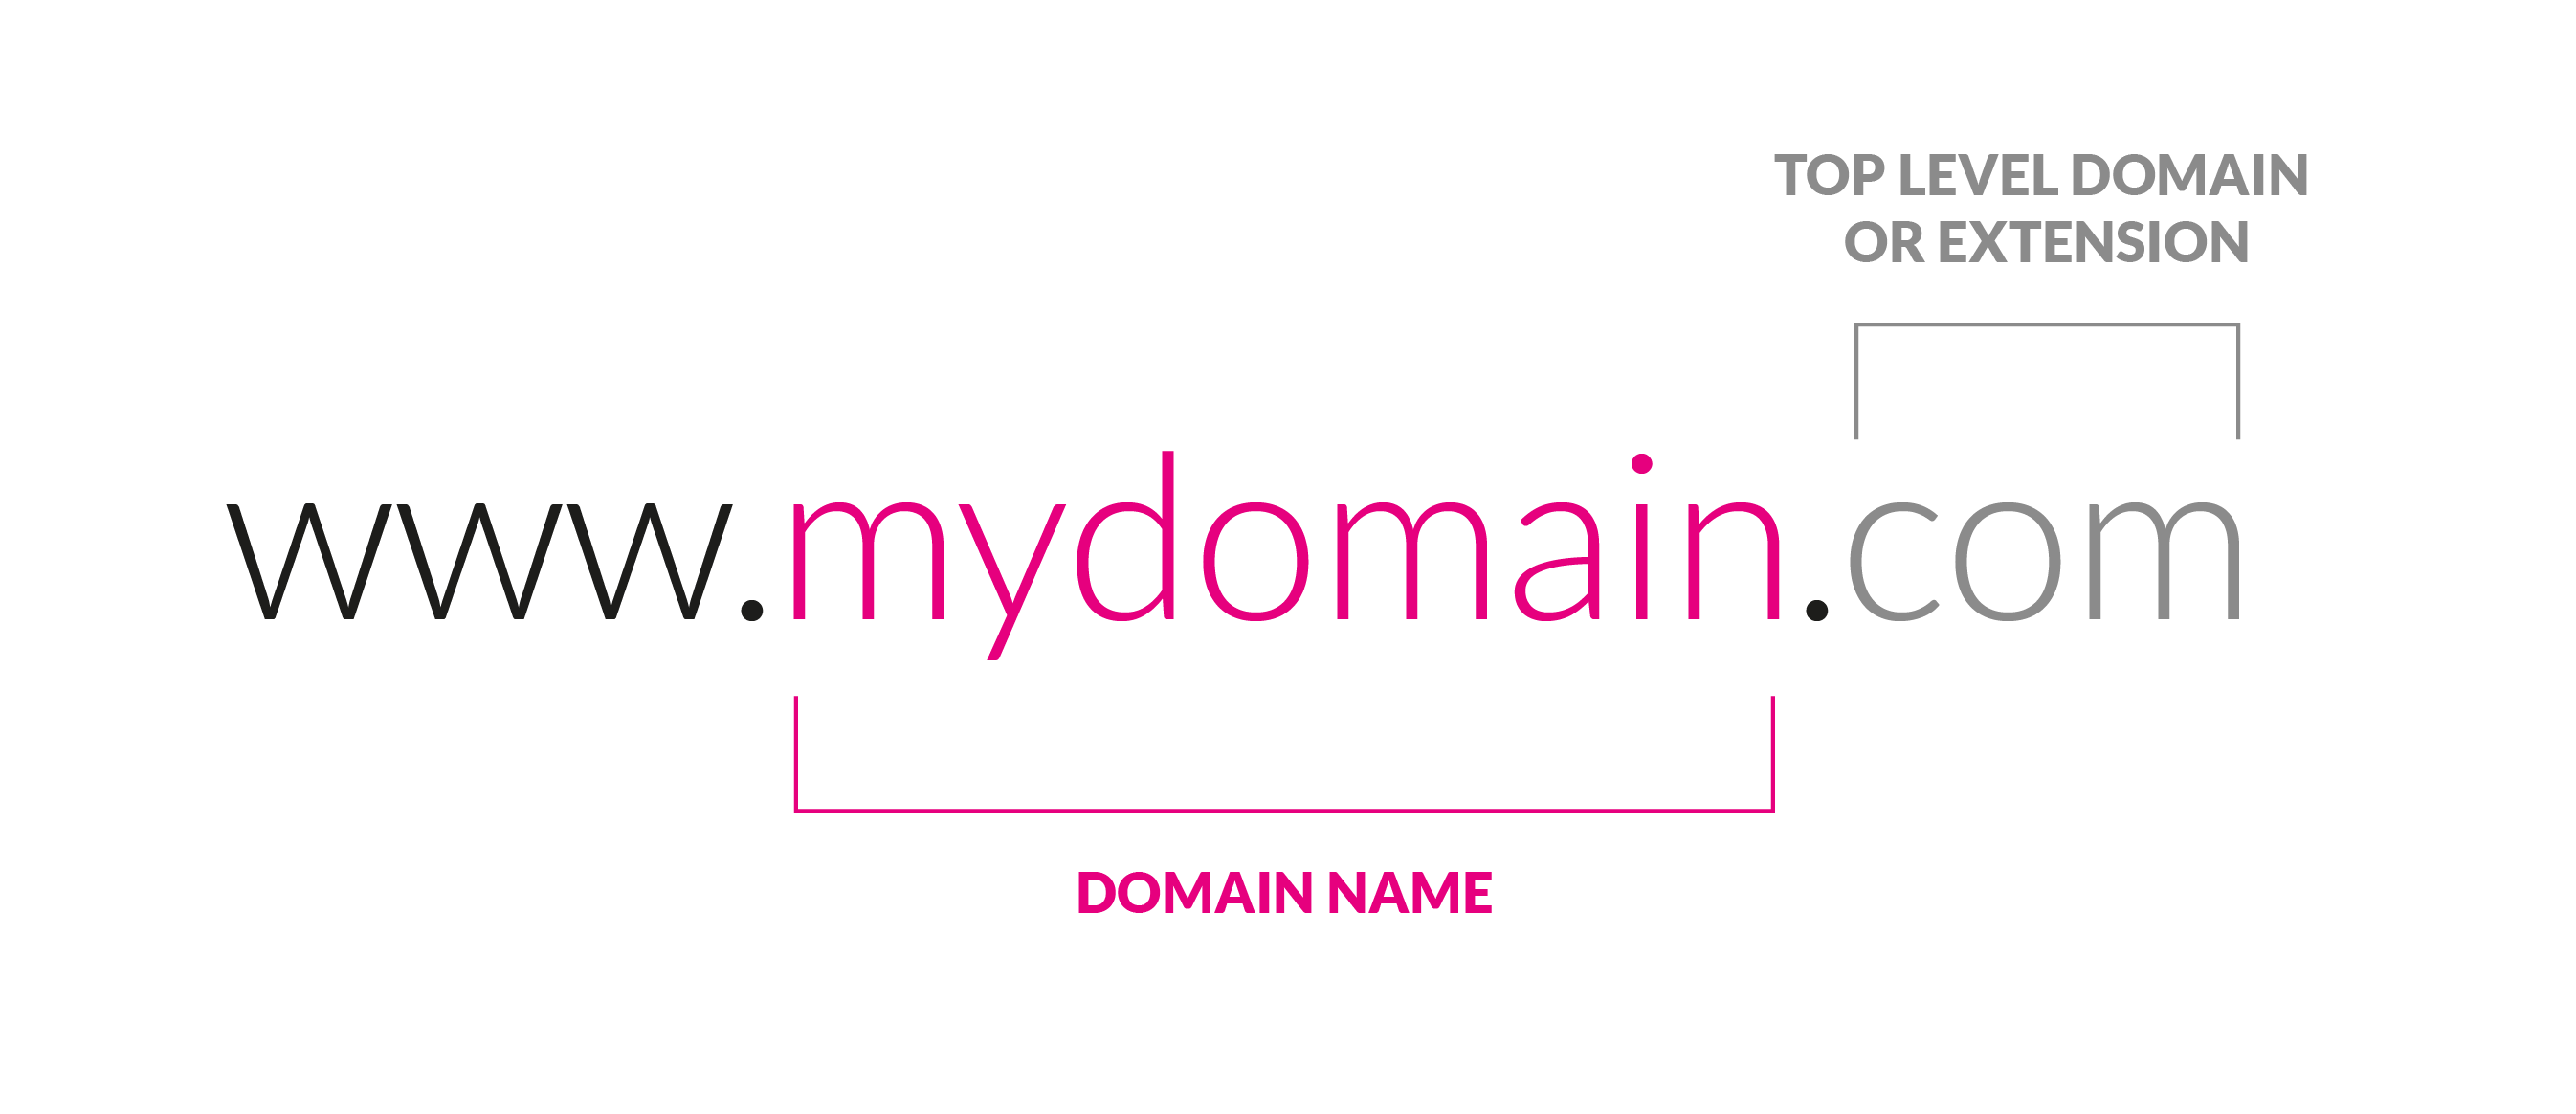 breakdown of what makes up a domain name